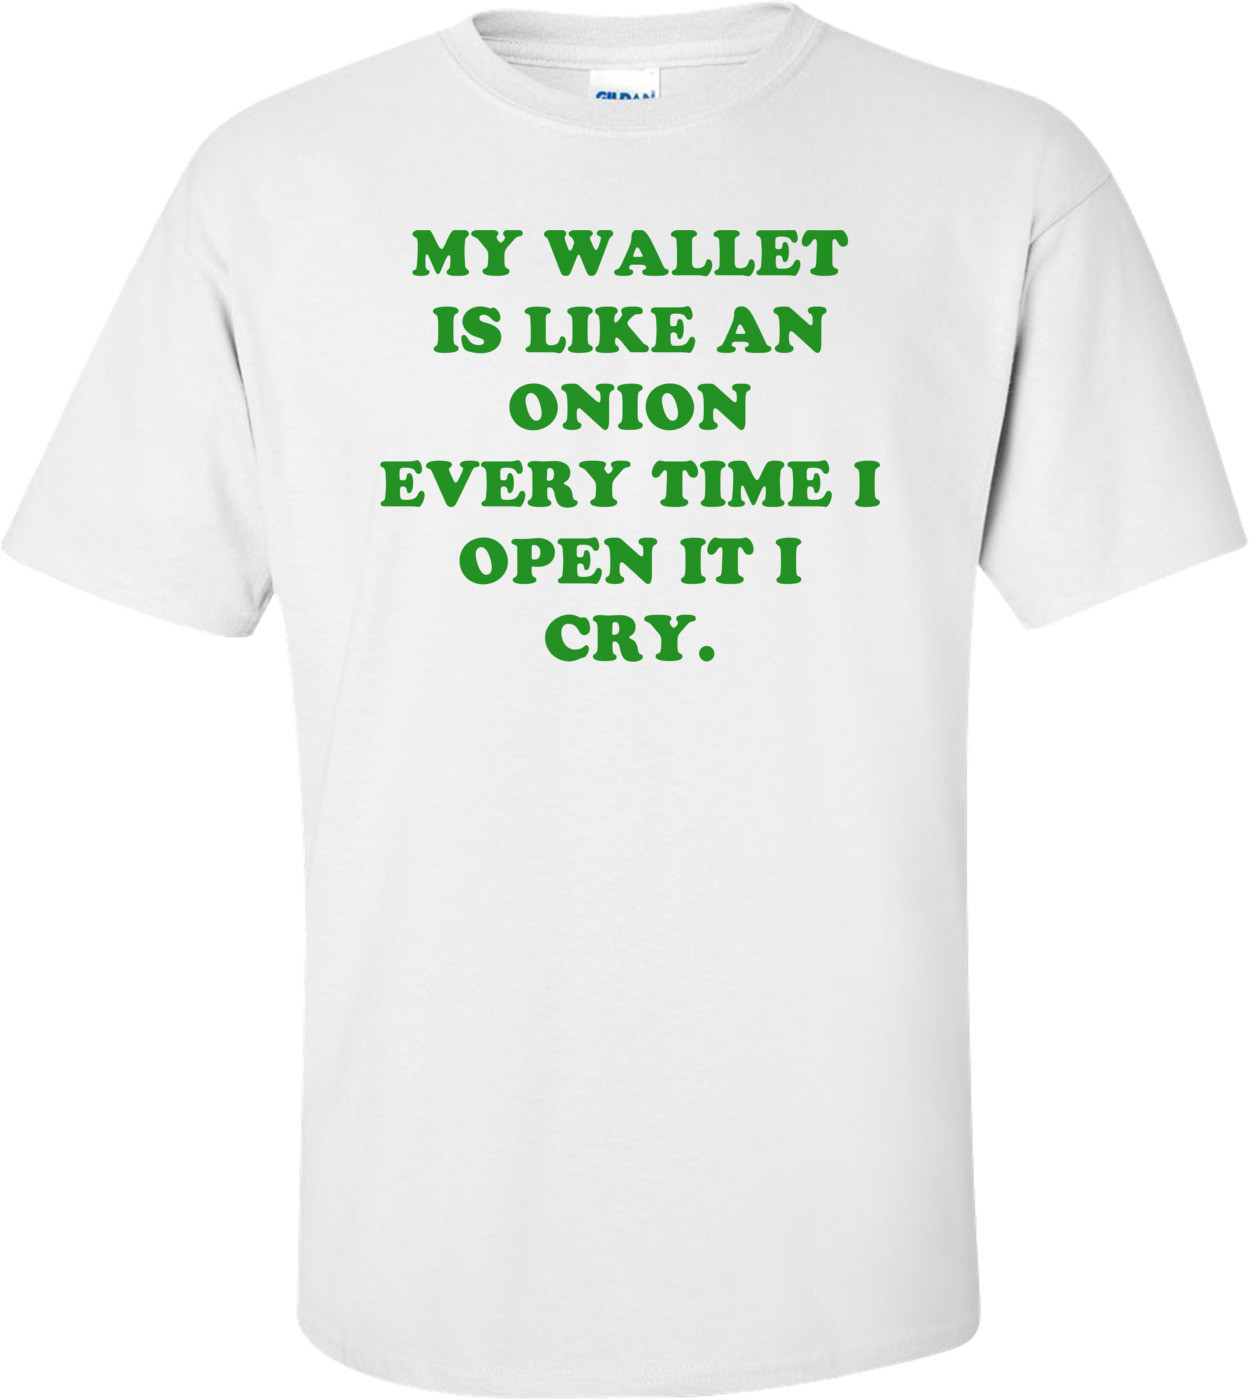 MY WALLET IS LIKE AN ONION EVERY TIME I OPEN IT I CRY. Shirt